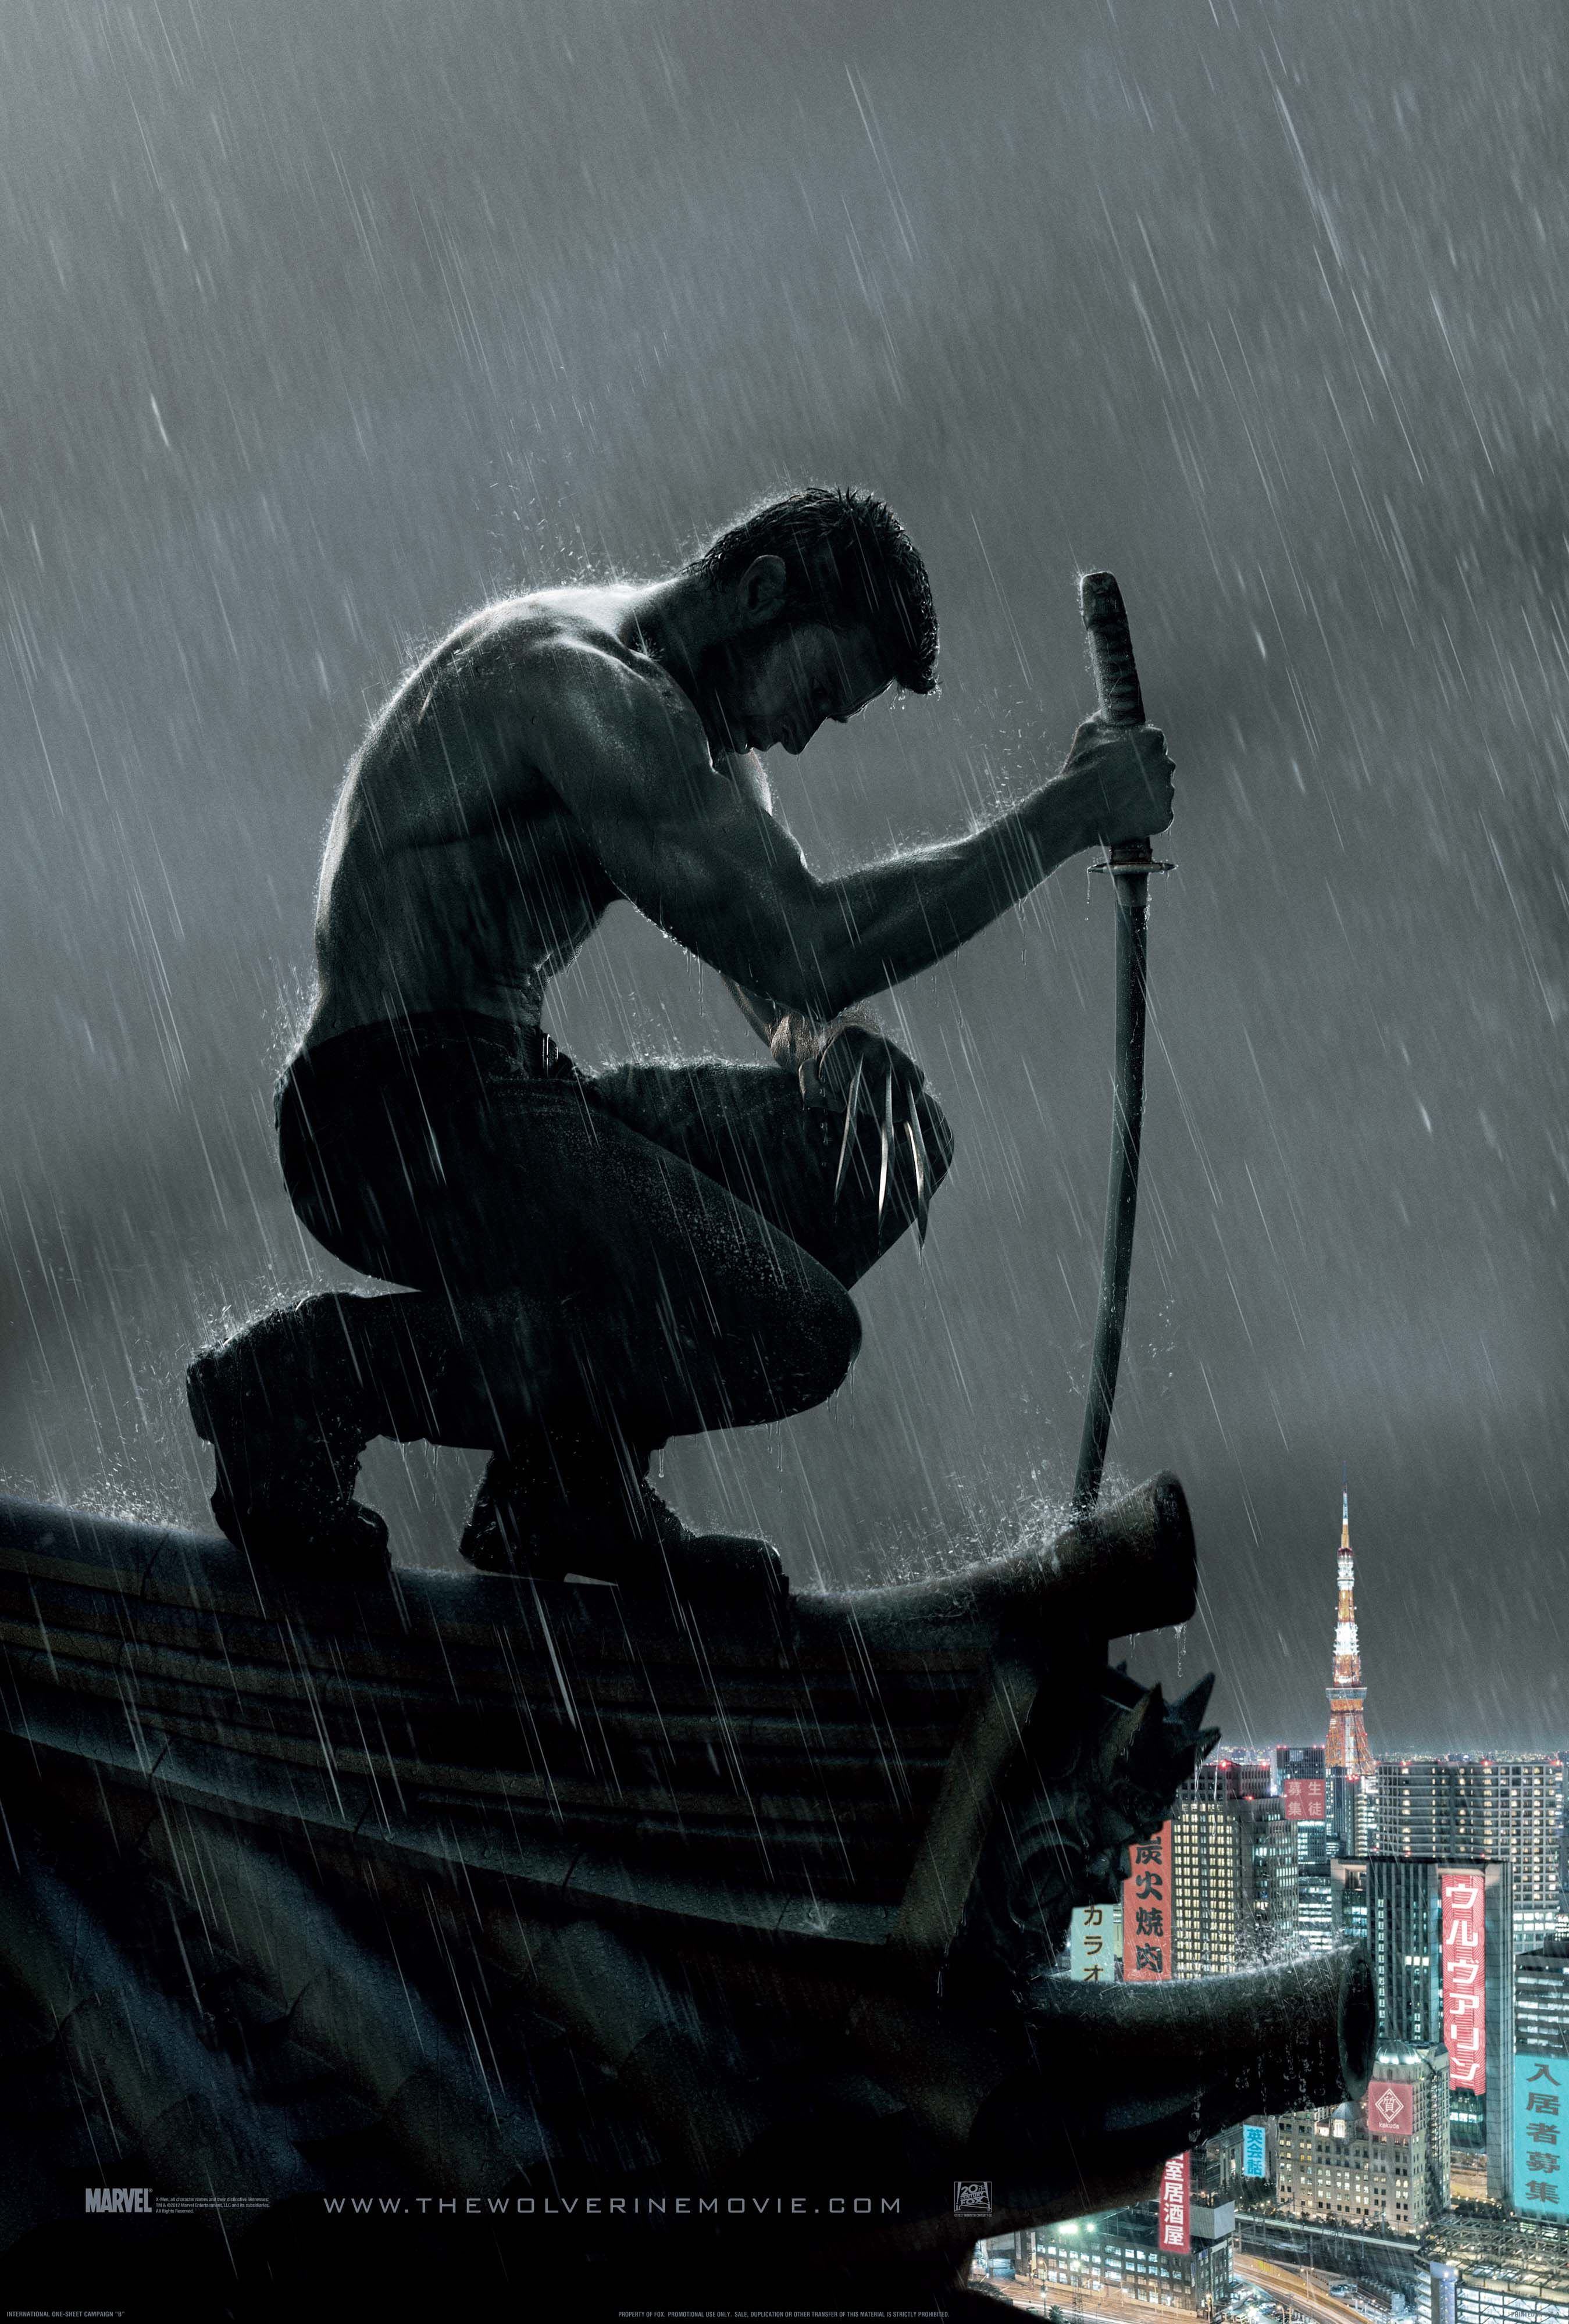 Finally Full Trailer of The Wolverine is Here With Hugh